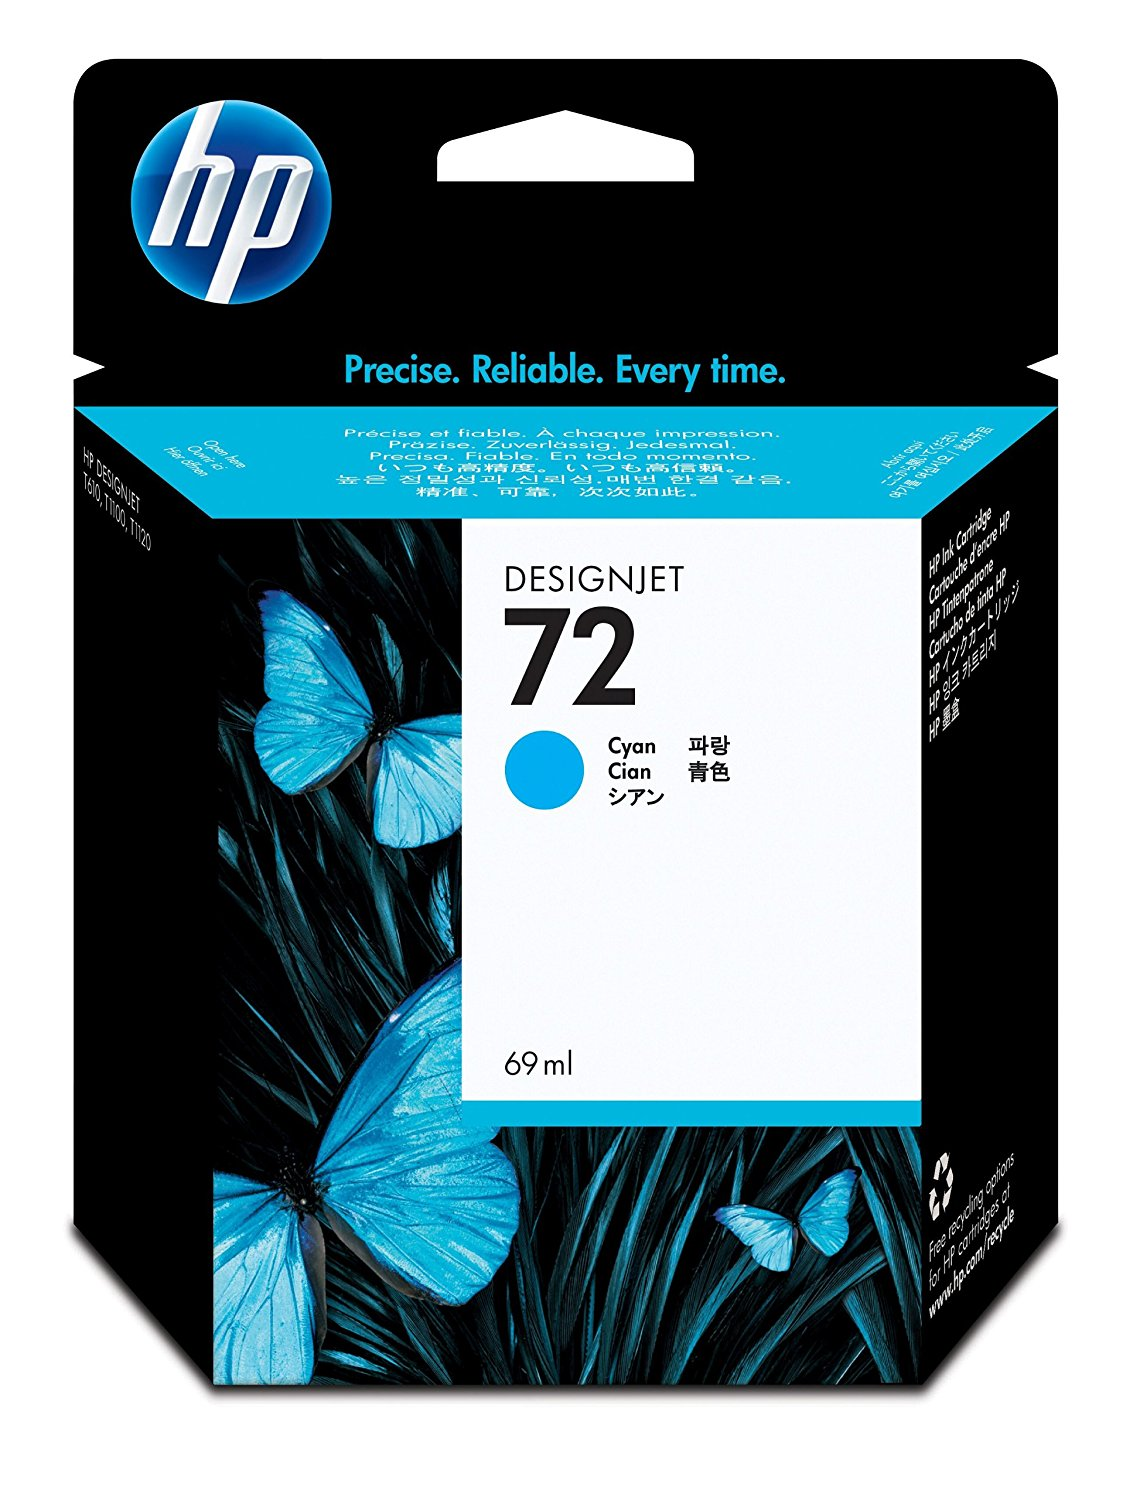 HP Products - HP - C9398A (HP 72) Ink, Cyan - Sold As 1 Each - Creates clear printing. - Long-lasting printing results. - Efficiently uses ink.